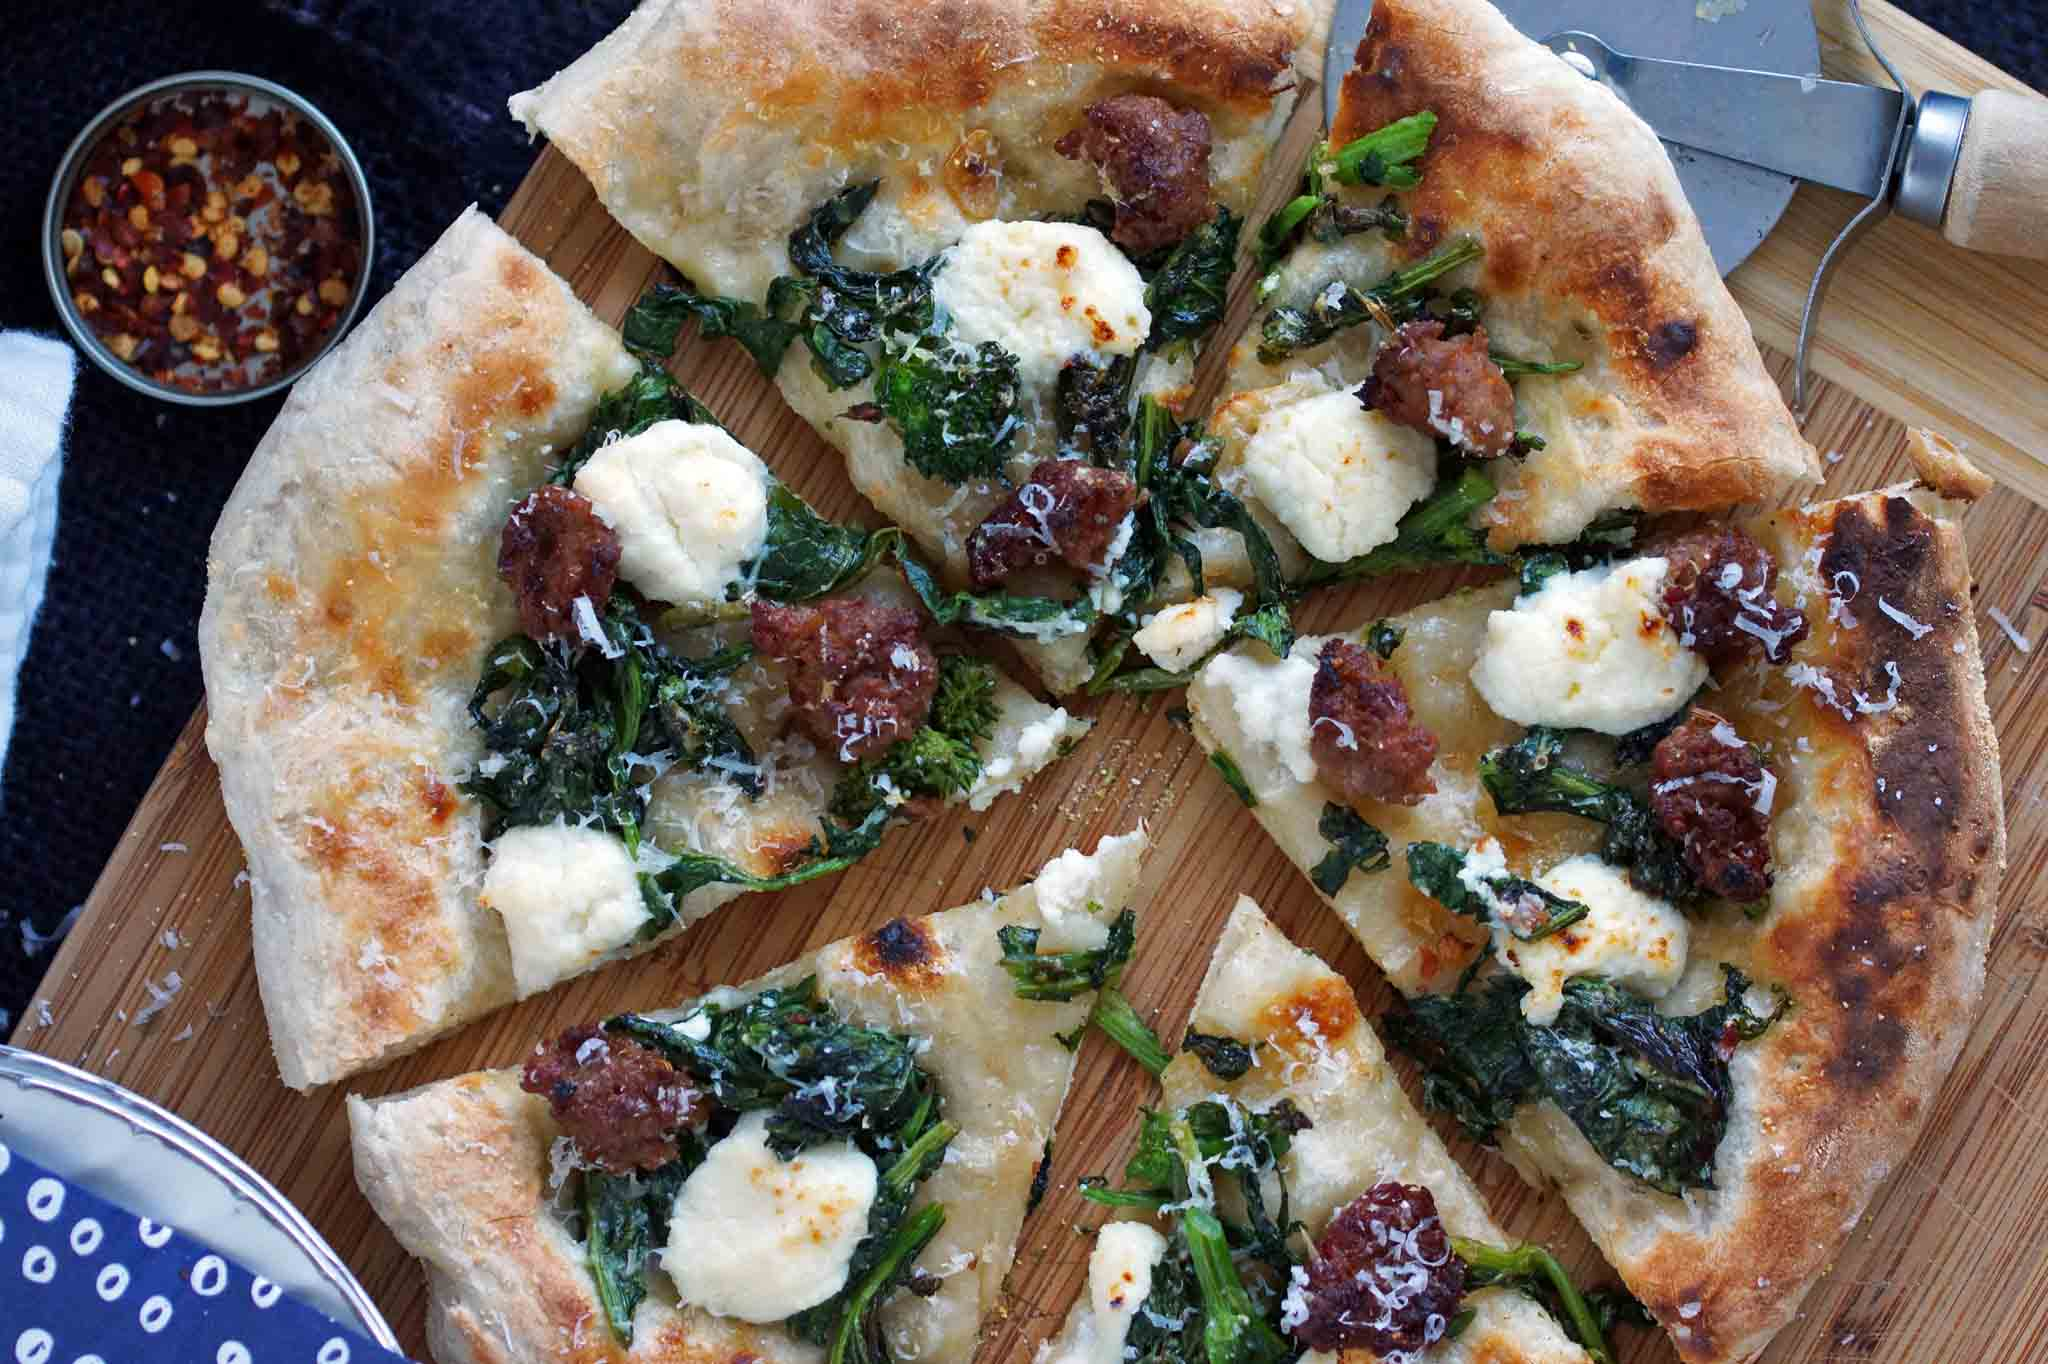 Spicy Sausage, Broccoli and Ricotta Pizza Recipe